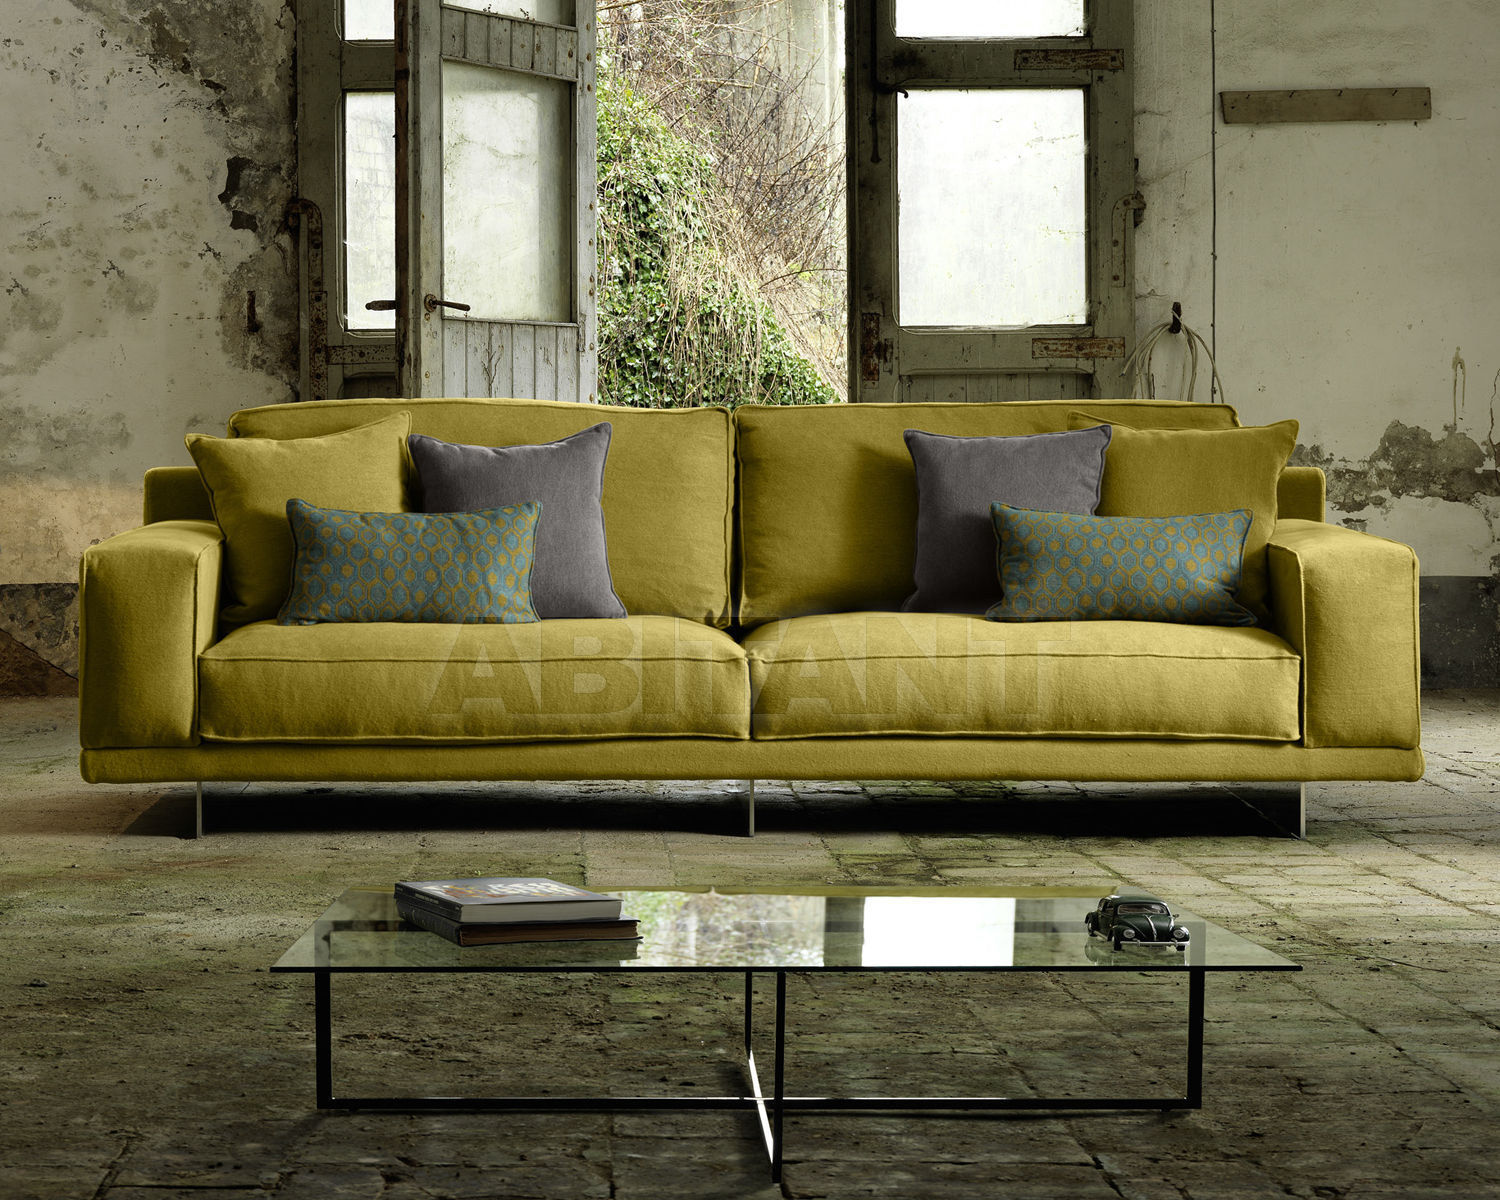 Sofa yellow domingo salotti bresson chic divano 4 posti for Divano 4 posti